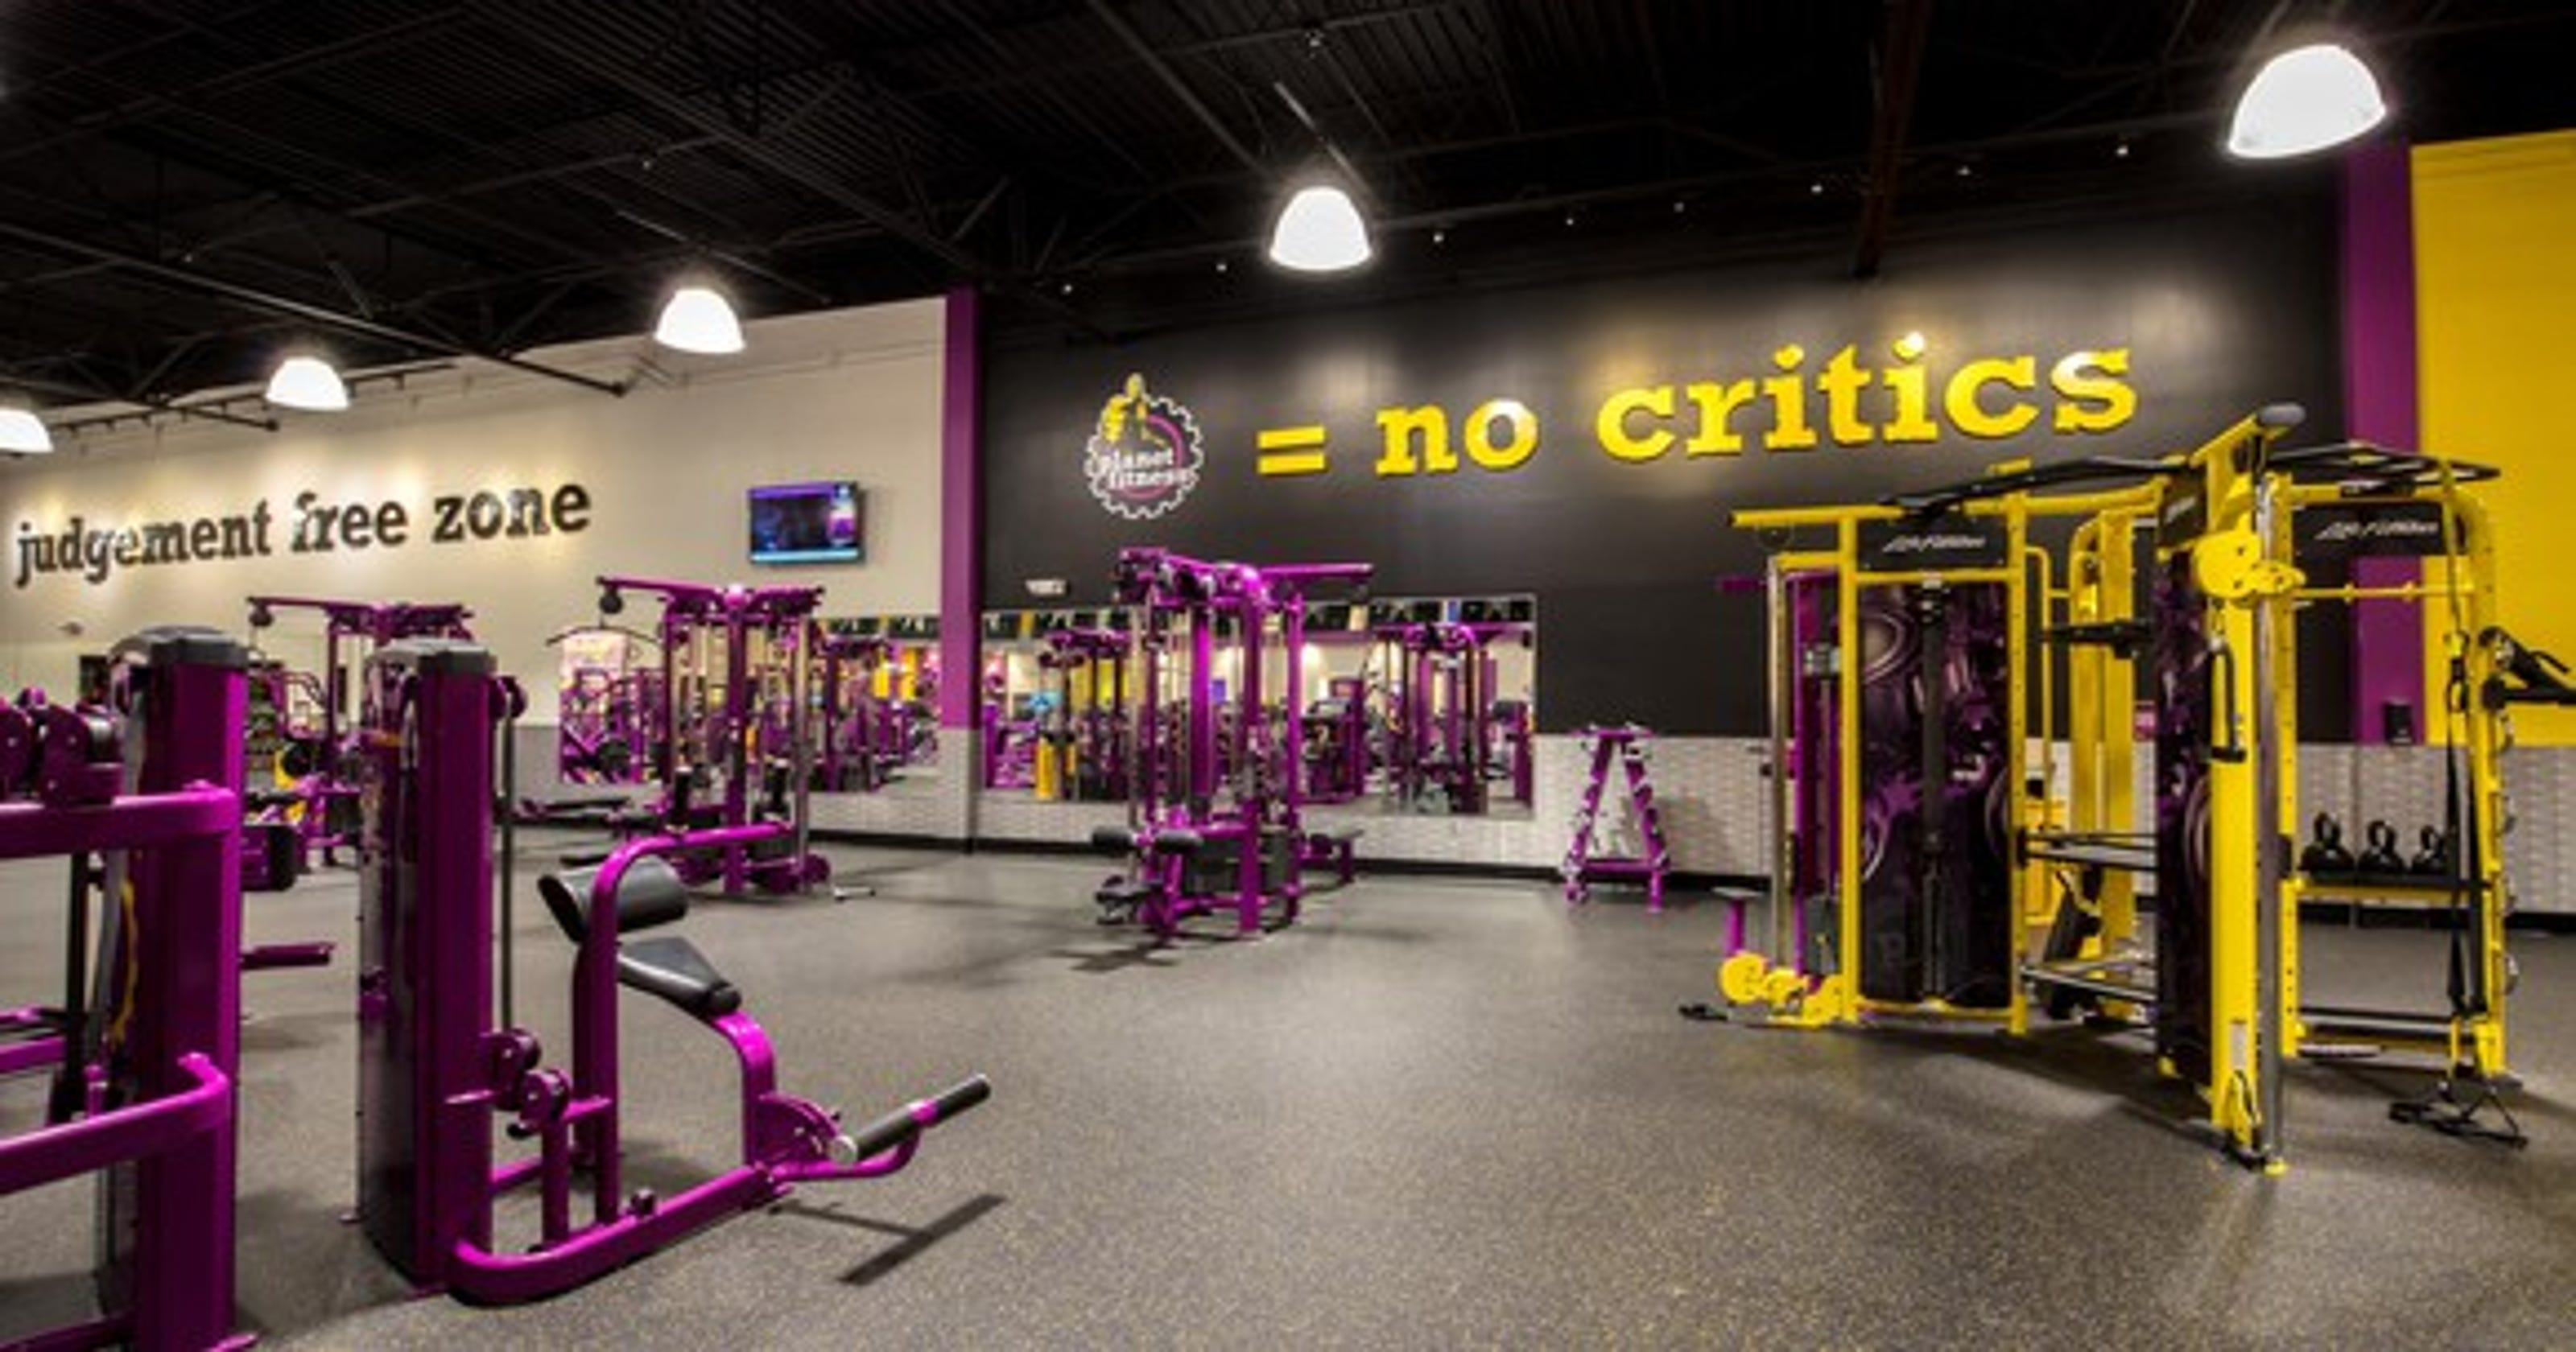 Planet fitness wants to open a gym in waukesha